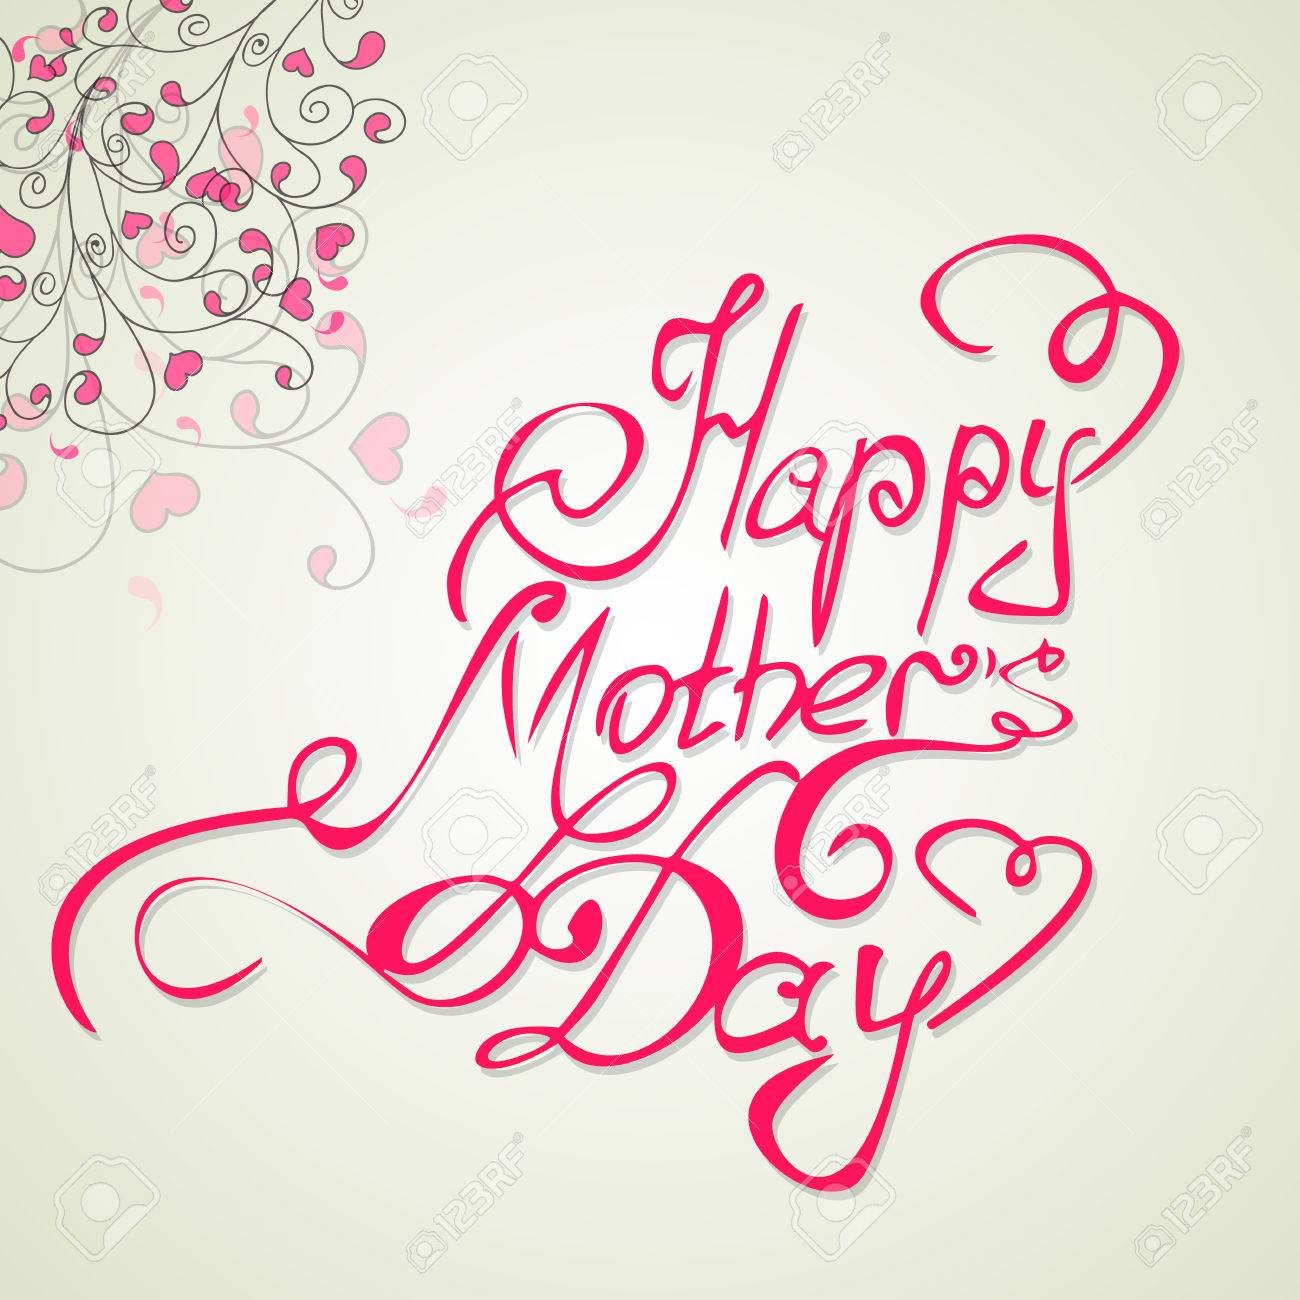 Background image 8841 - Happy Motherss Day Vintage Lettering Background Stock Vector 38528841